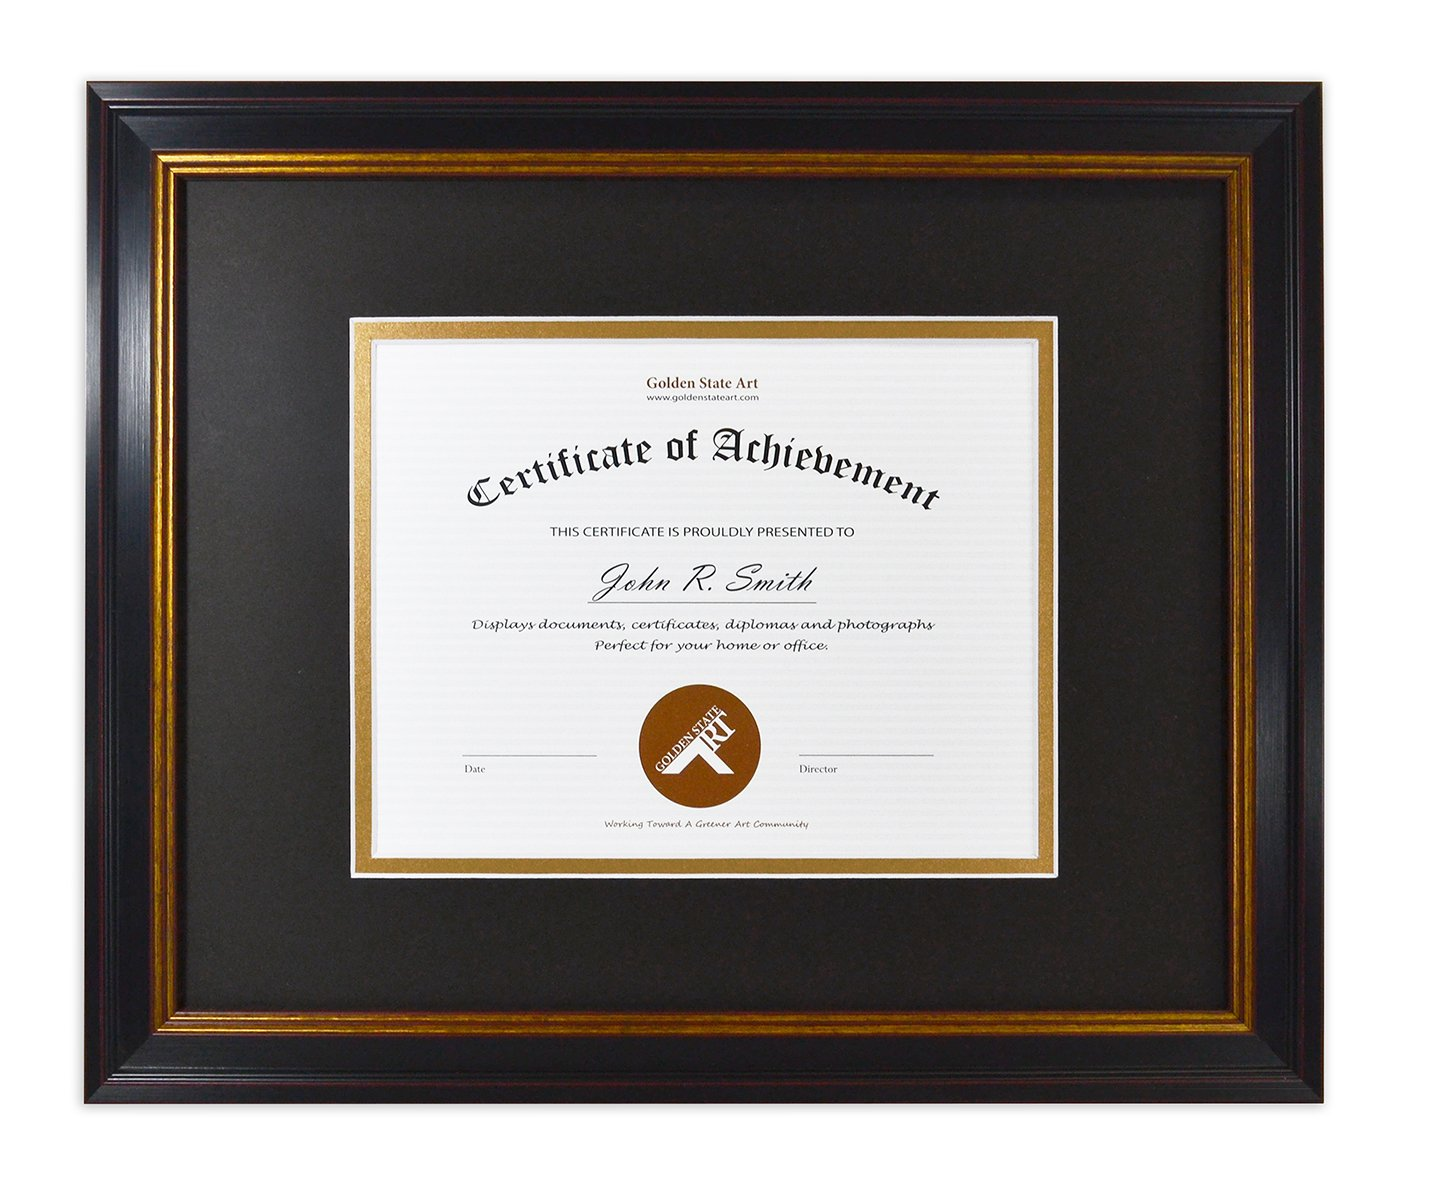 Golden State Art 11x14 Frame for 7x9 Diploma/Certificate, Black Gold & Burgundy color. Includes Black Over Gold Double Mat and Real Glass